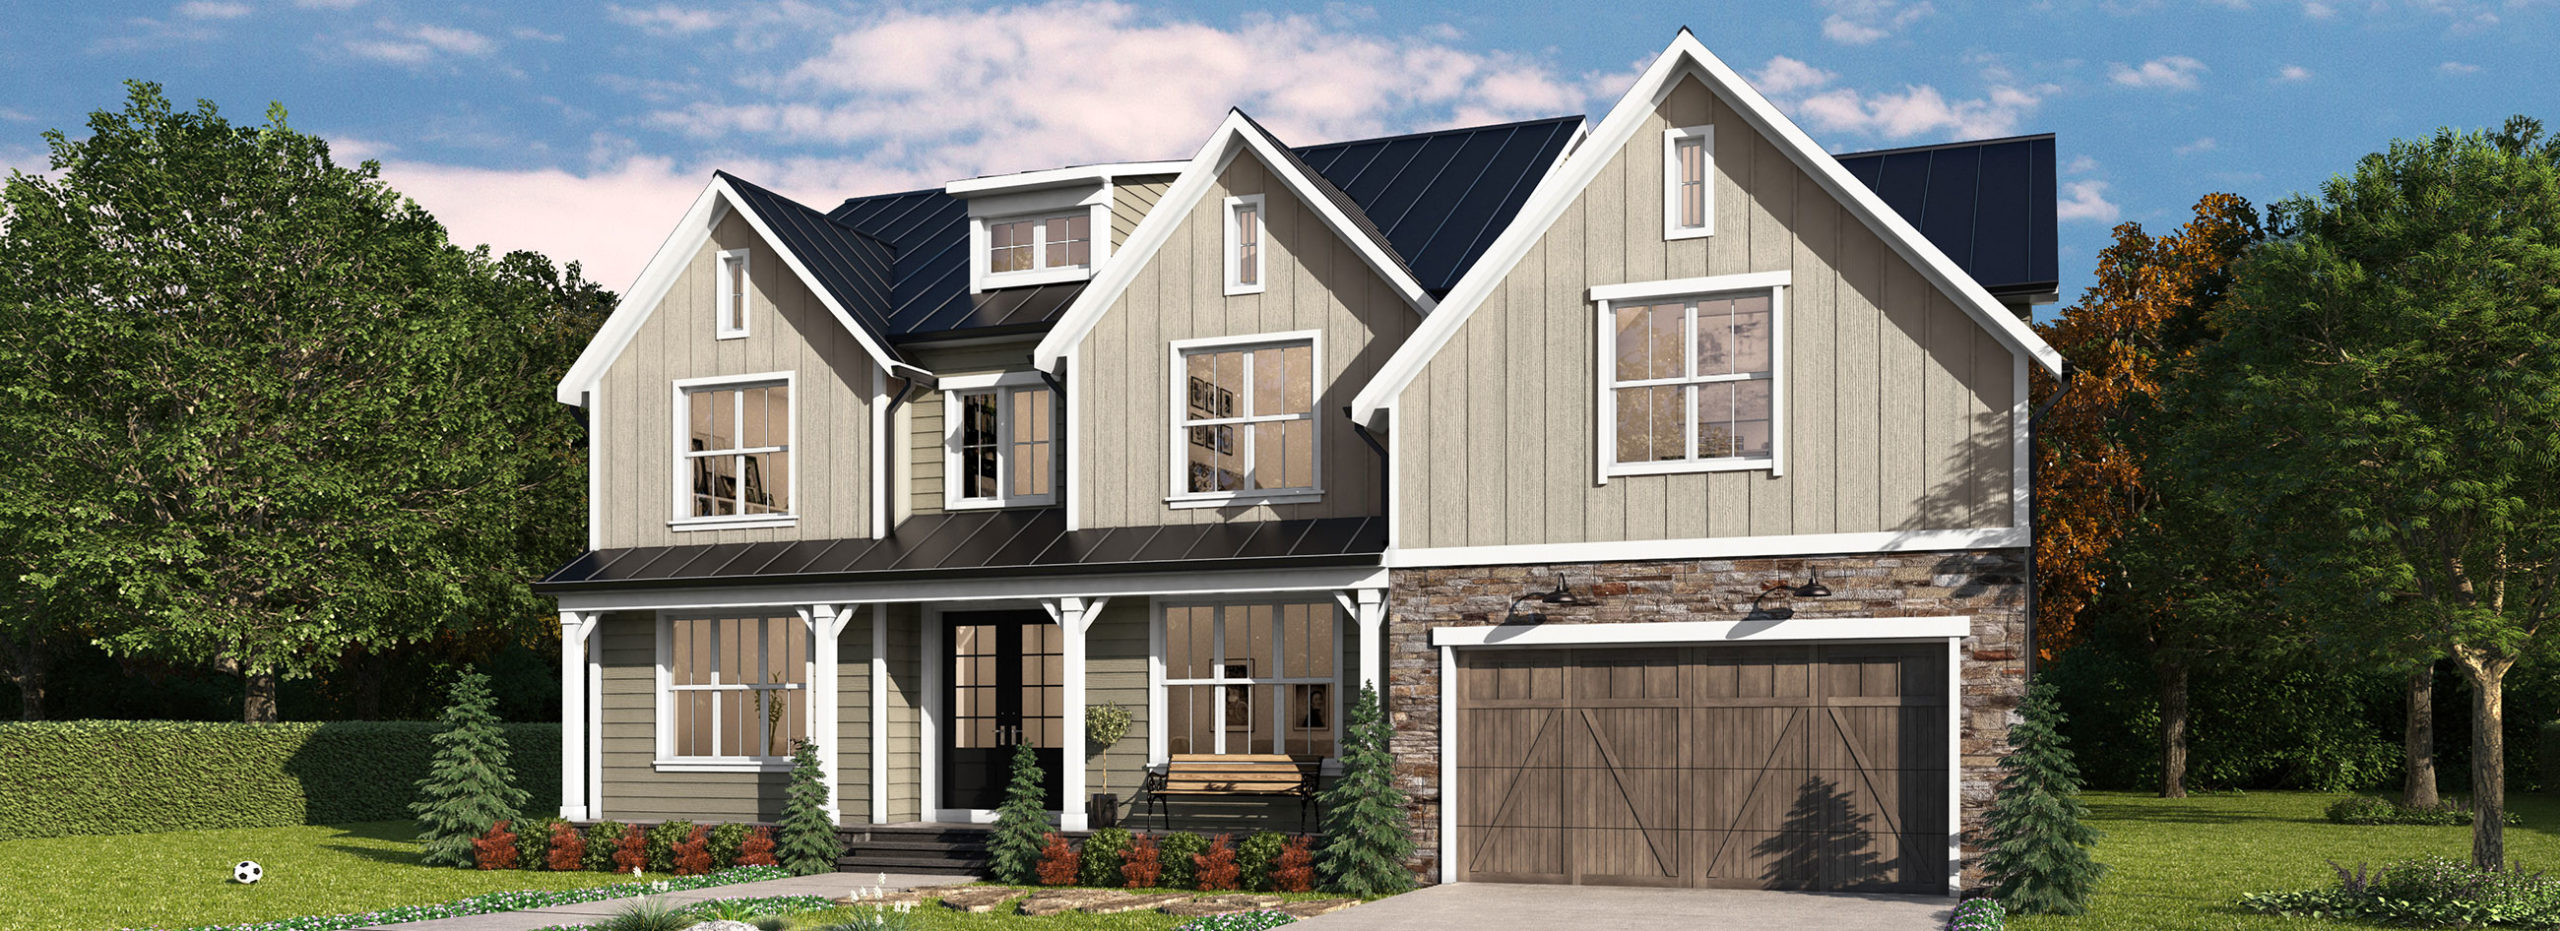 proposed farmhouse style home